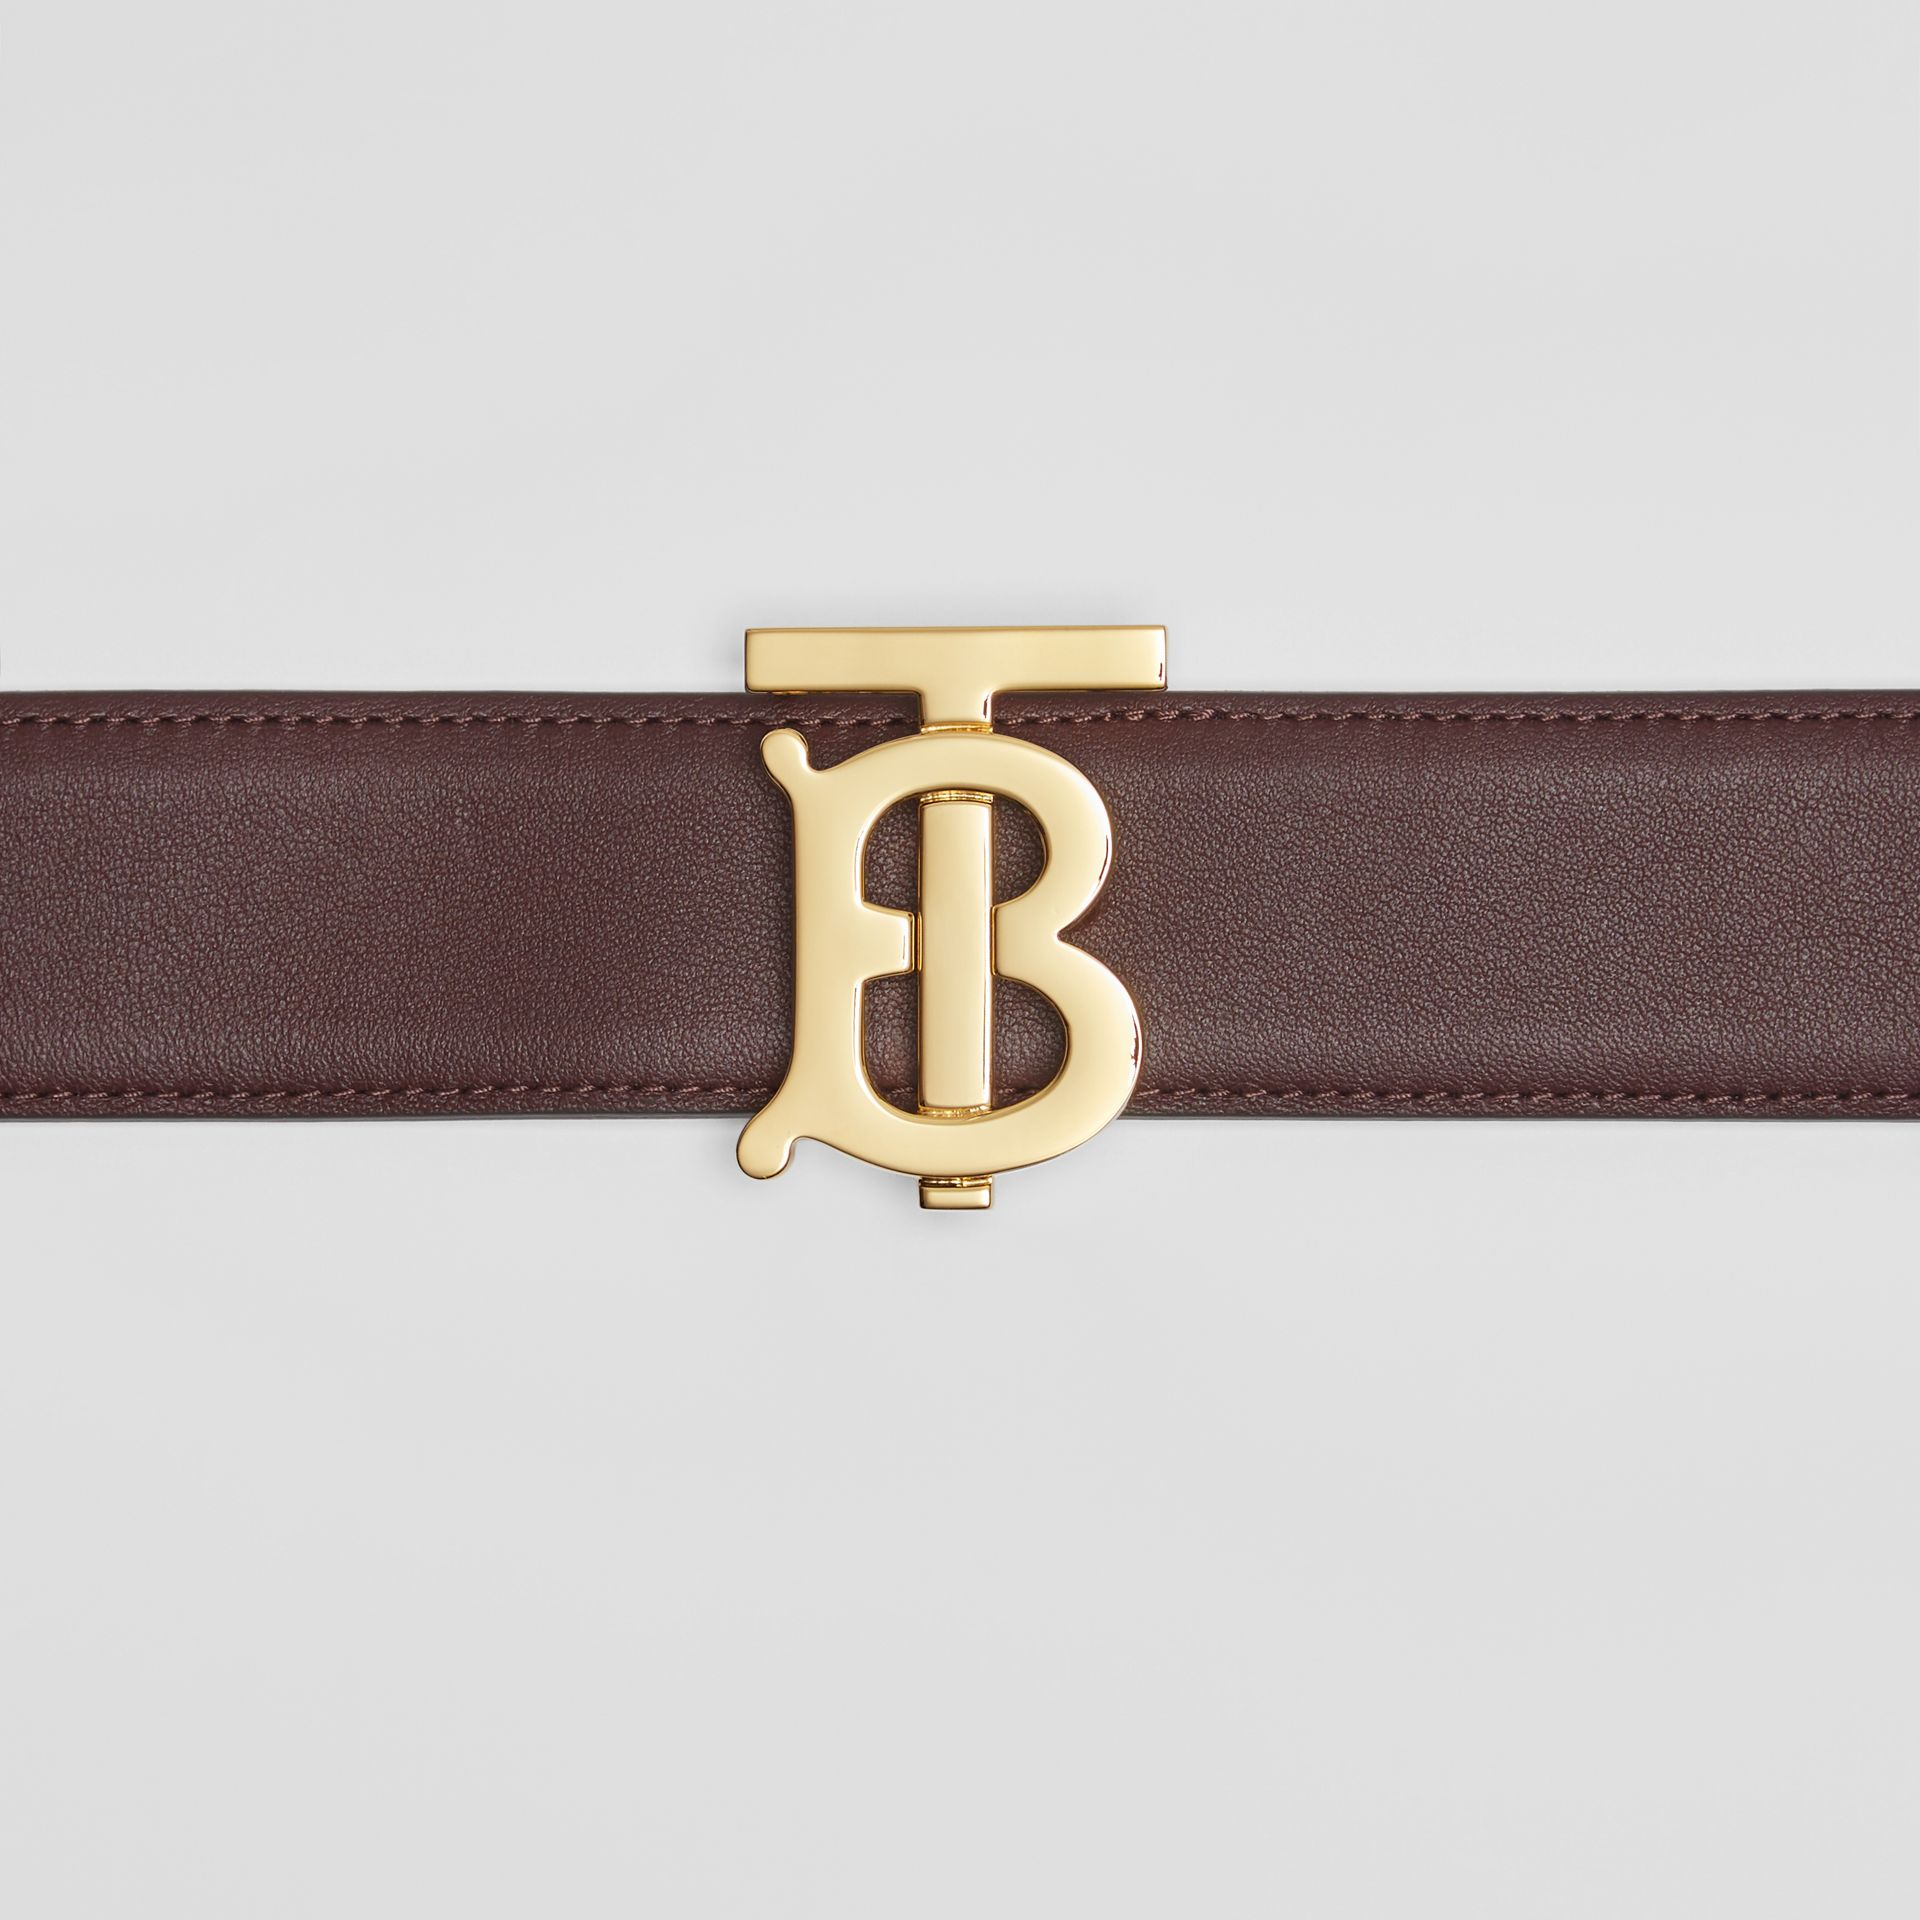 Reversible Monogram Motif Leather Belt in Oxblood/rose Beige - Women | Burberry Singapore - gallery image 1